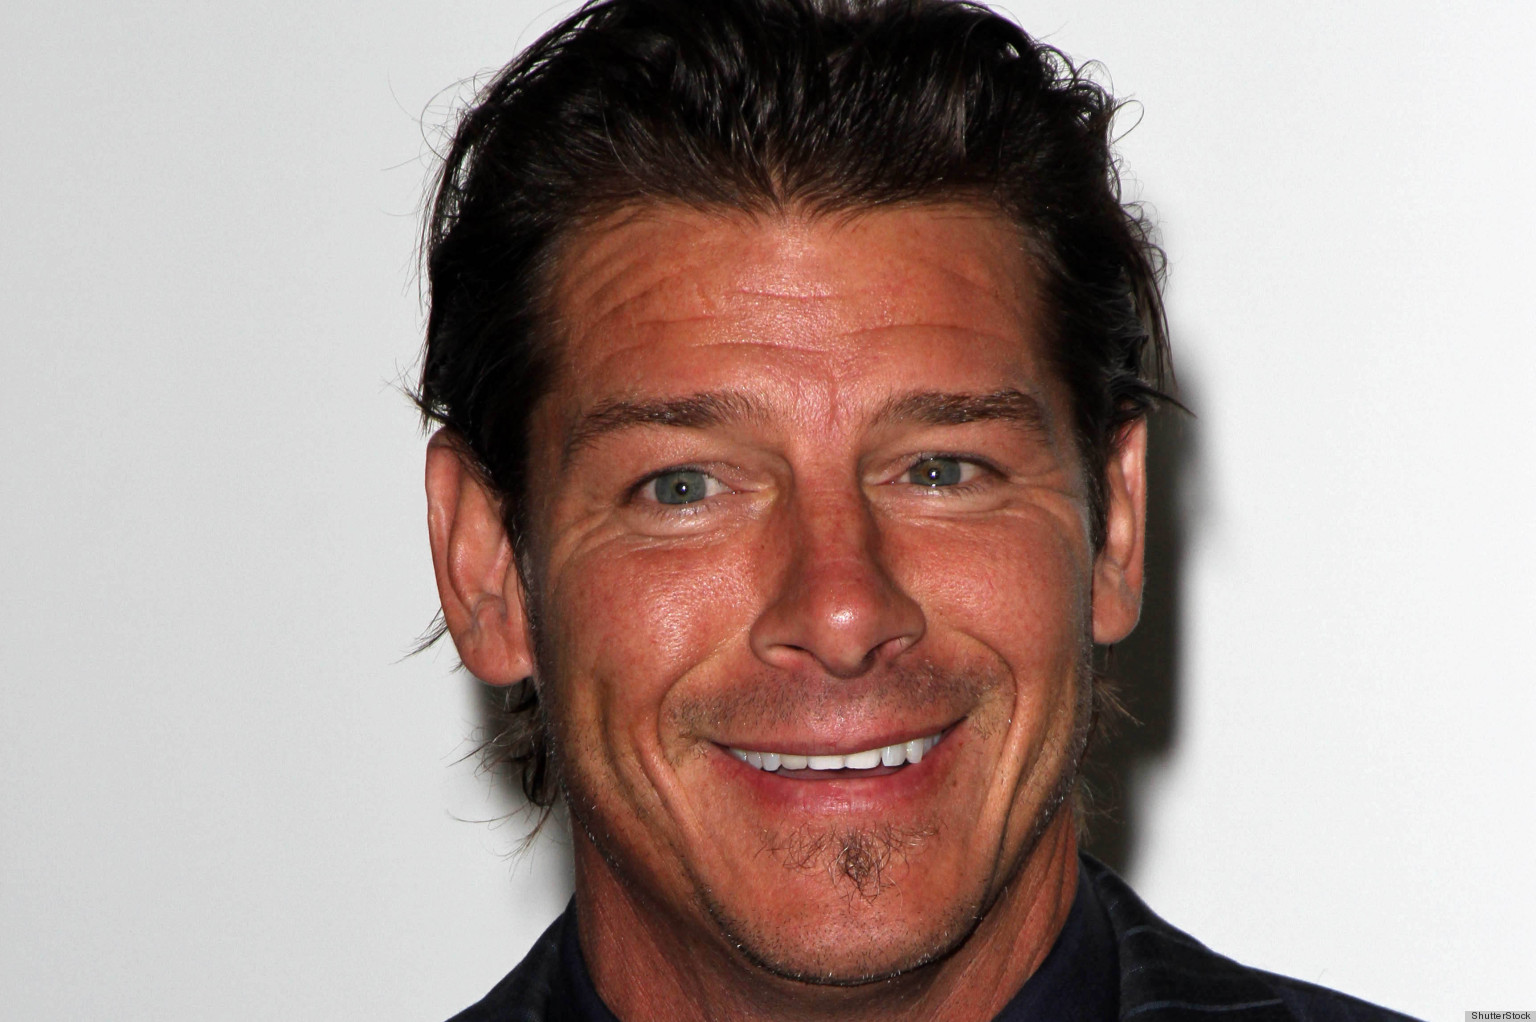 ty pennington marriedty pennington twitter, ty pennington at home, ty pennington andrea bock, ty pennington instagram, ty pennington, ty pennington wife, ty pennington gay, ty pennington 2015, ty pennington married, ty pennington family, ty pennington dui, ty pennington fabric, ty pennington net worth, ty pennington patio furniture, ty pennington new show, ty pennington house, ty pennington parkside, ty pennington net worth 2015, ty pennington mortgage, ty pennington bedding